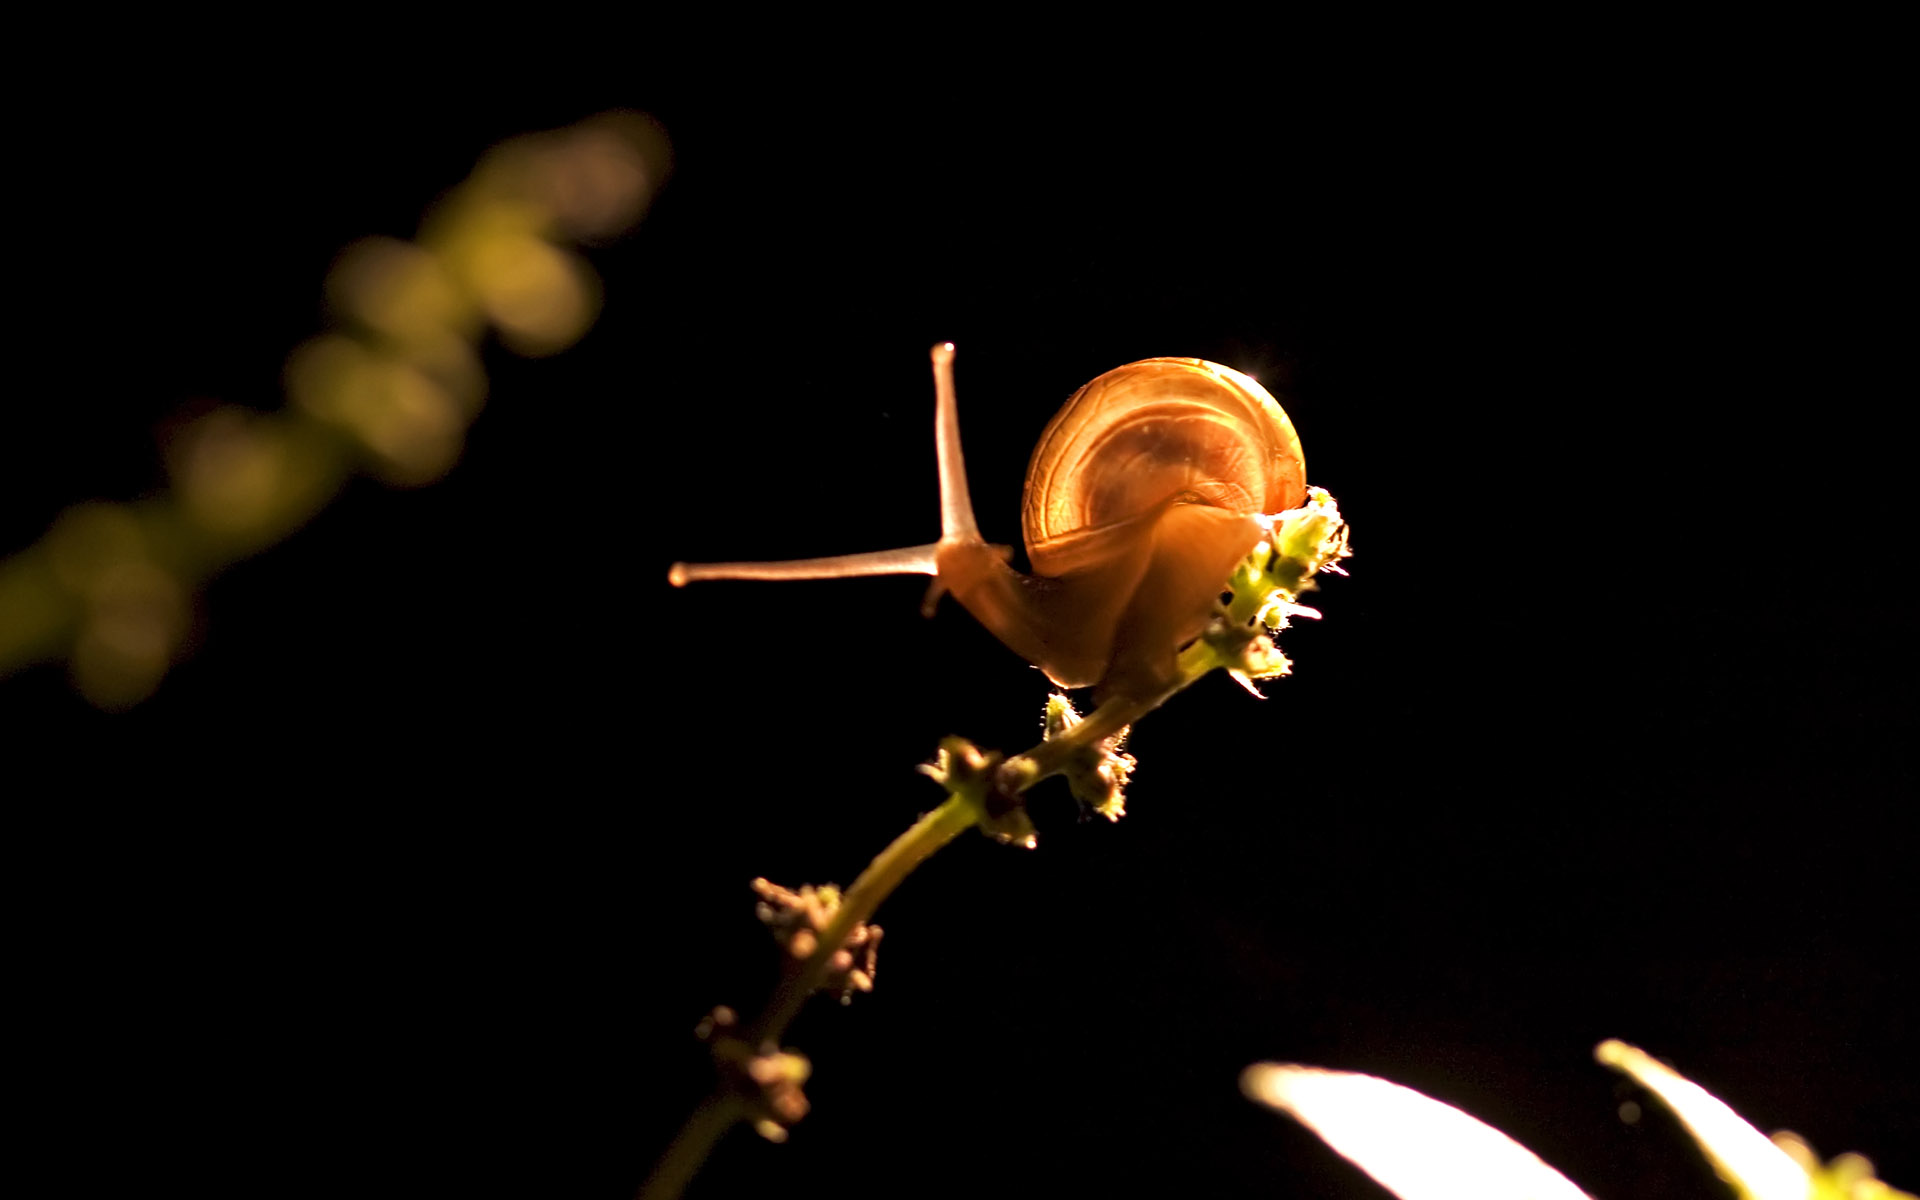 snail animal wallpaper 51236